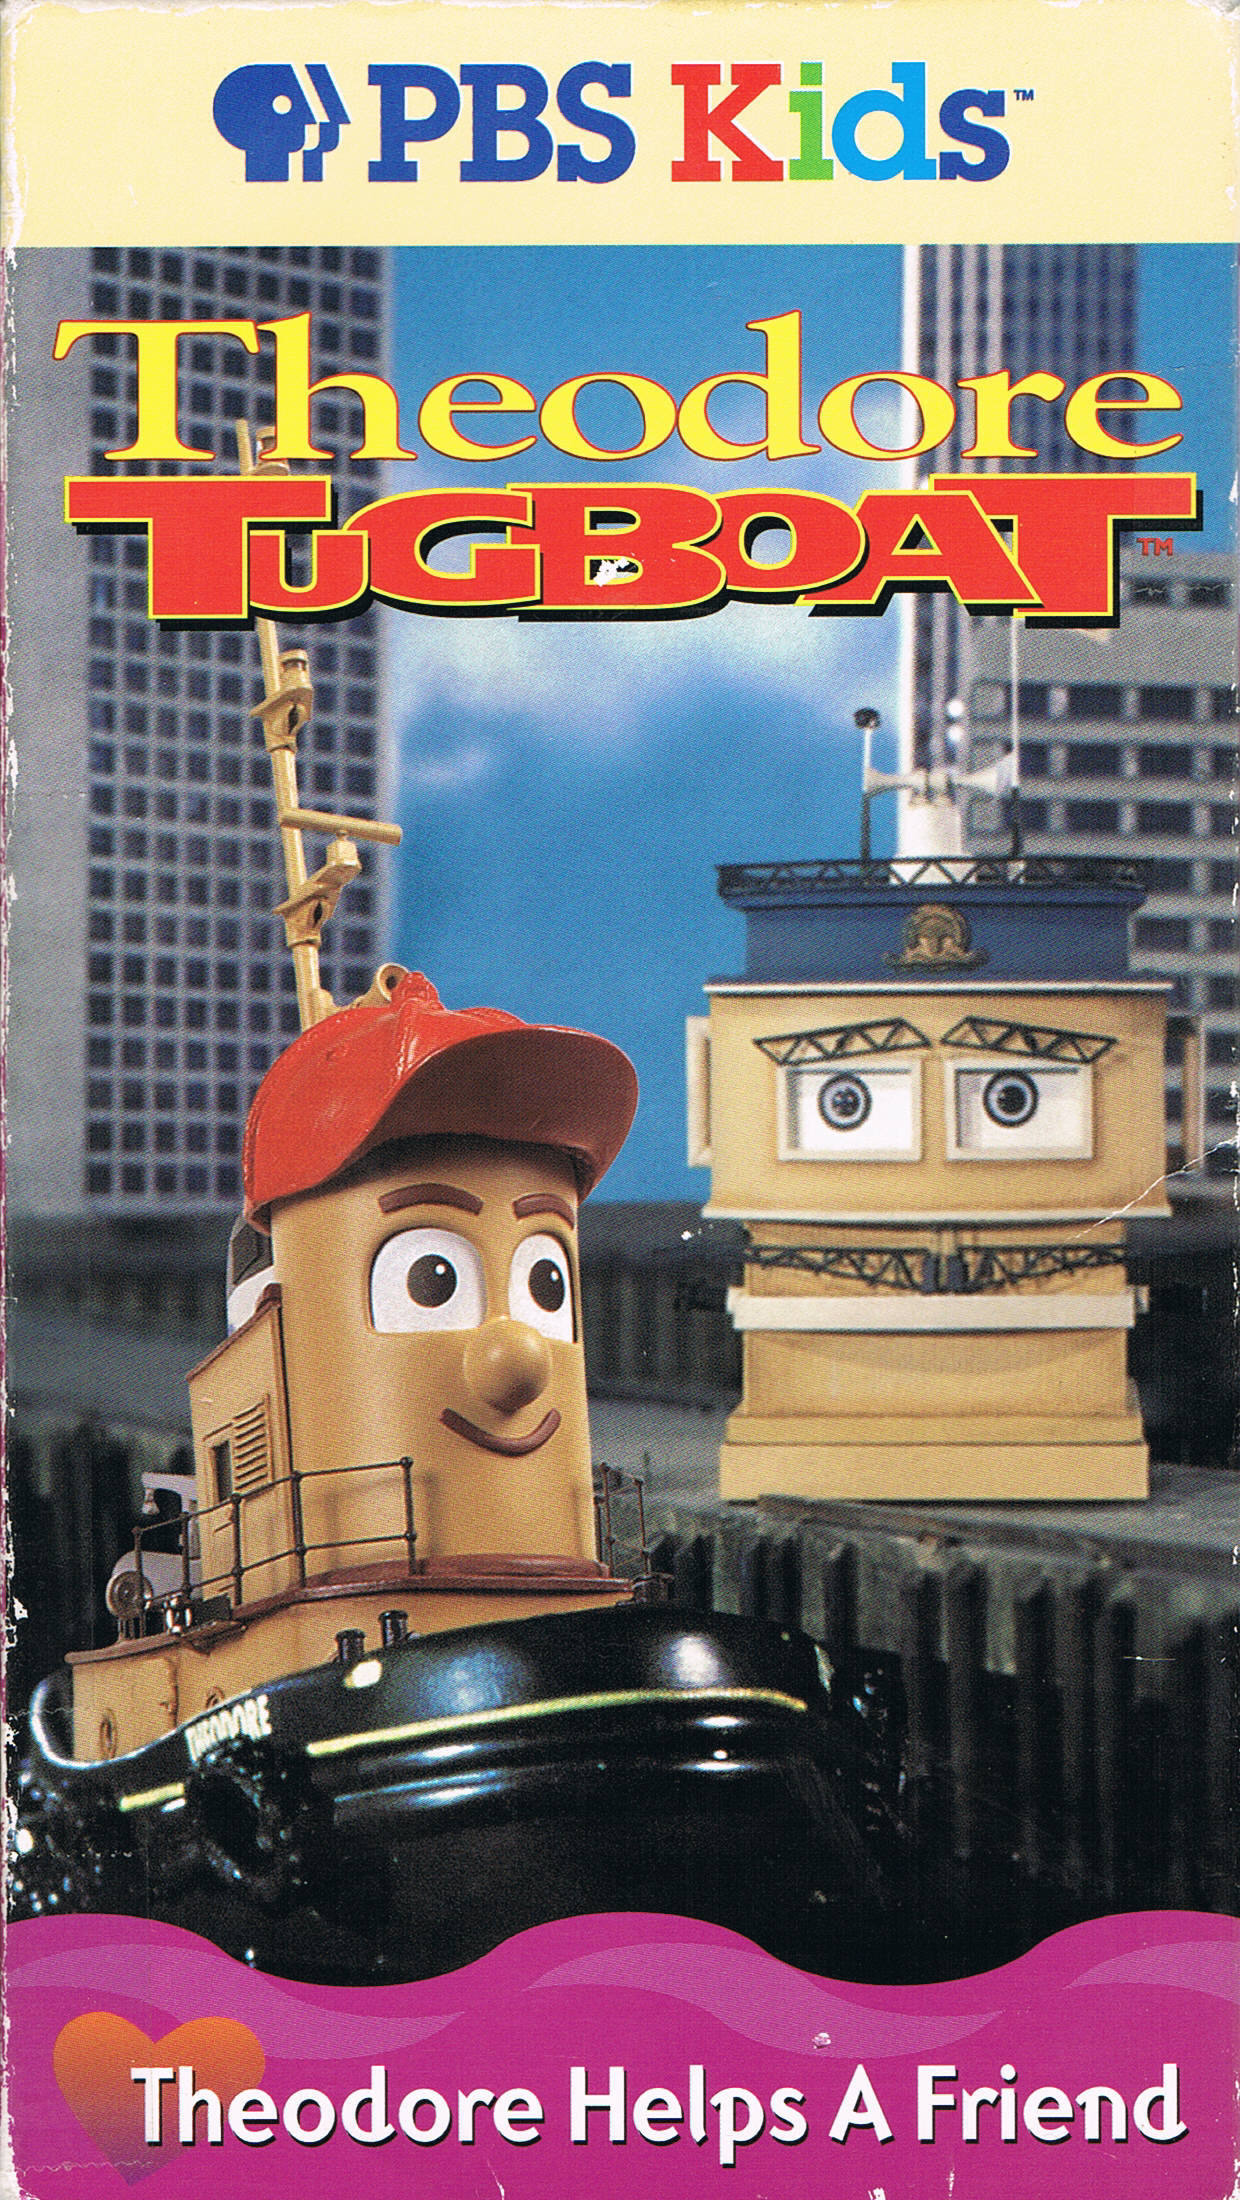 CategoryUS VHS DVD releases Theodore Tugboat Wiki